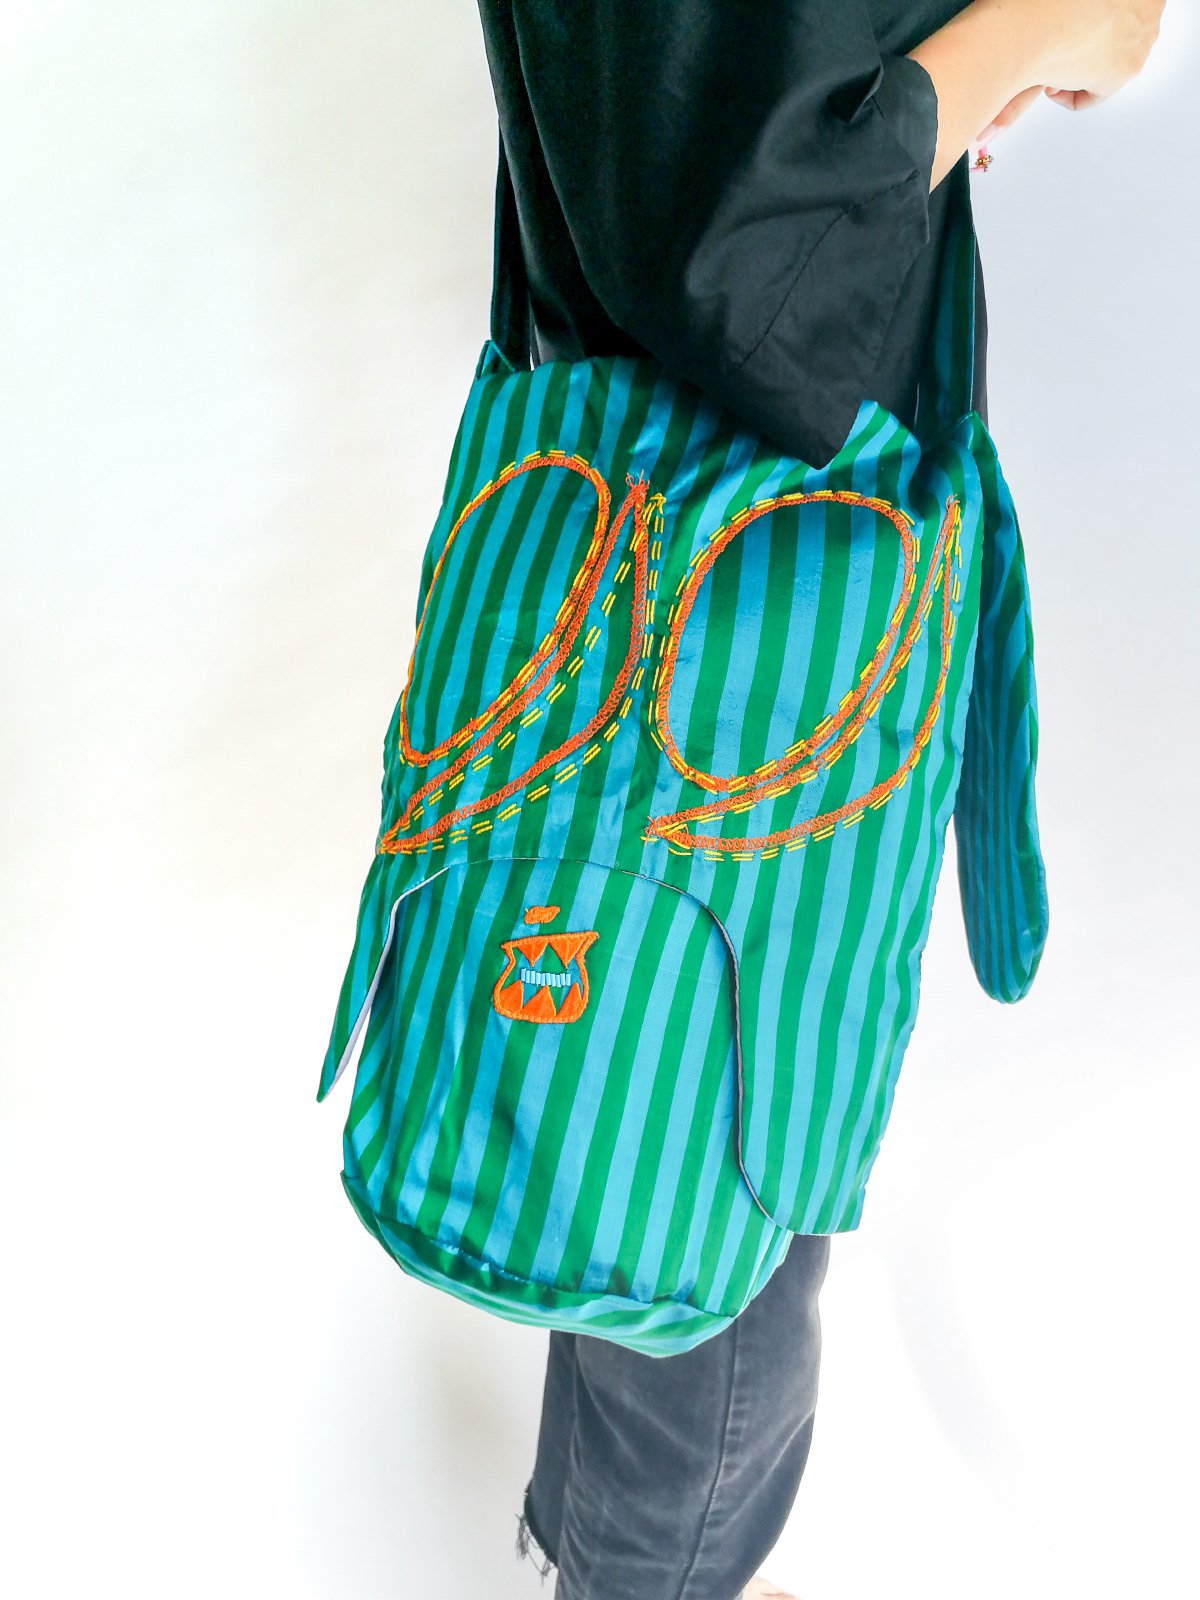 Skoloct Bag (hand stitch) / green × blue